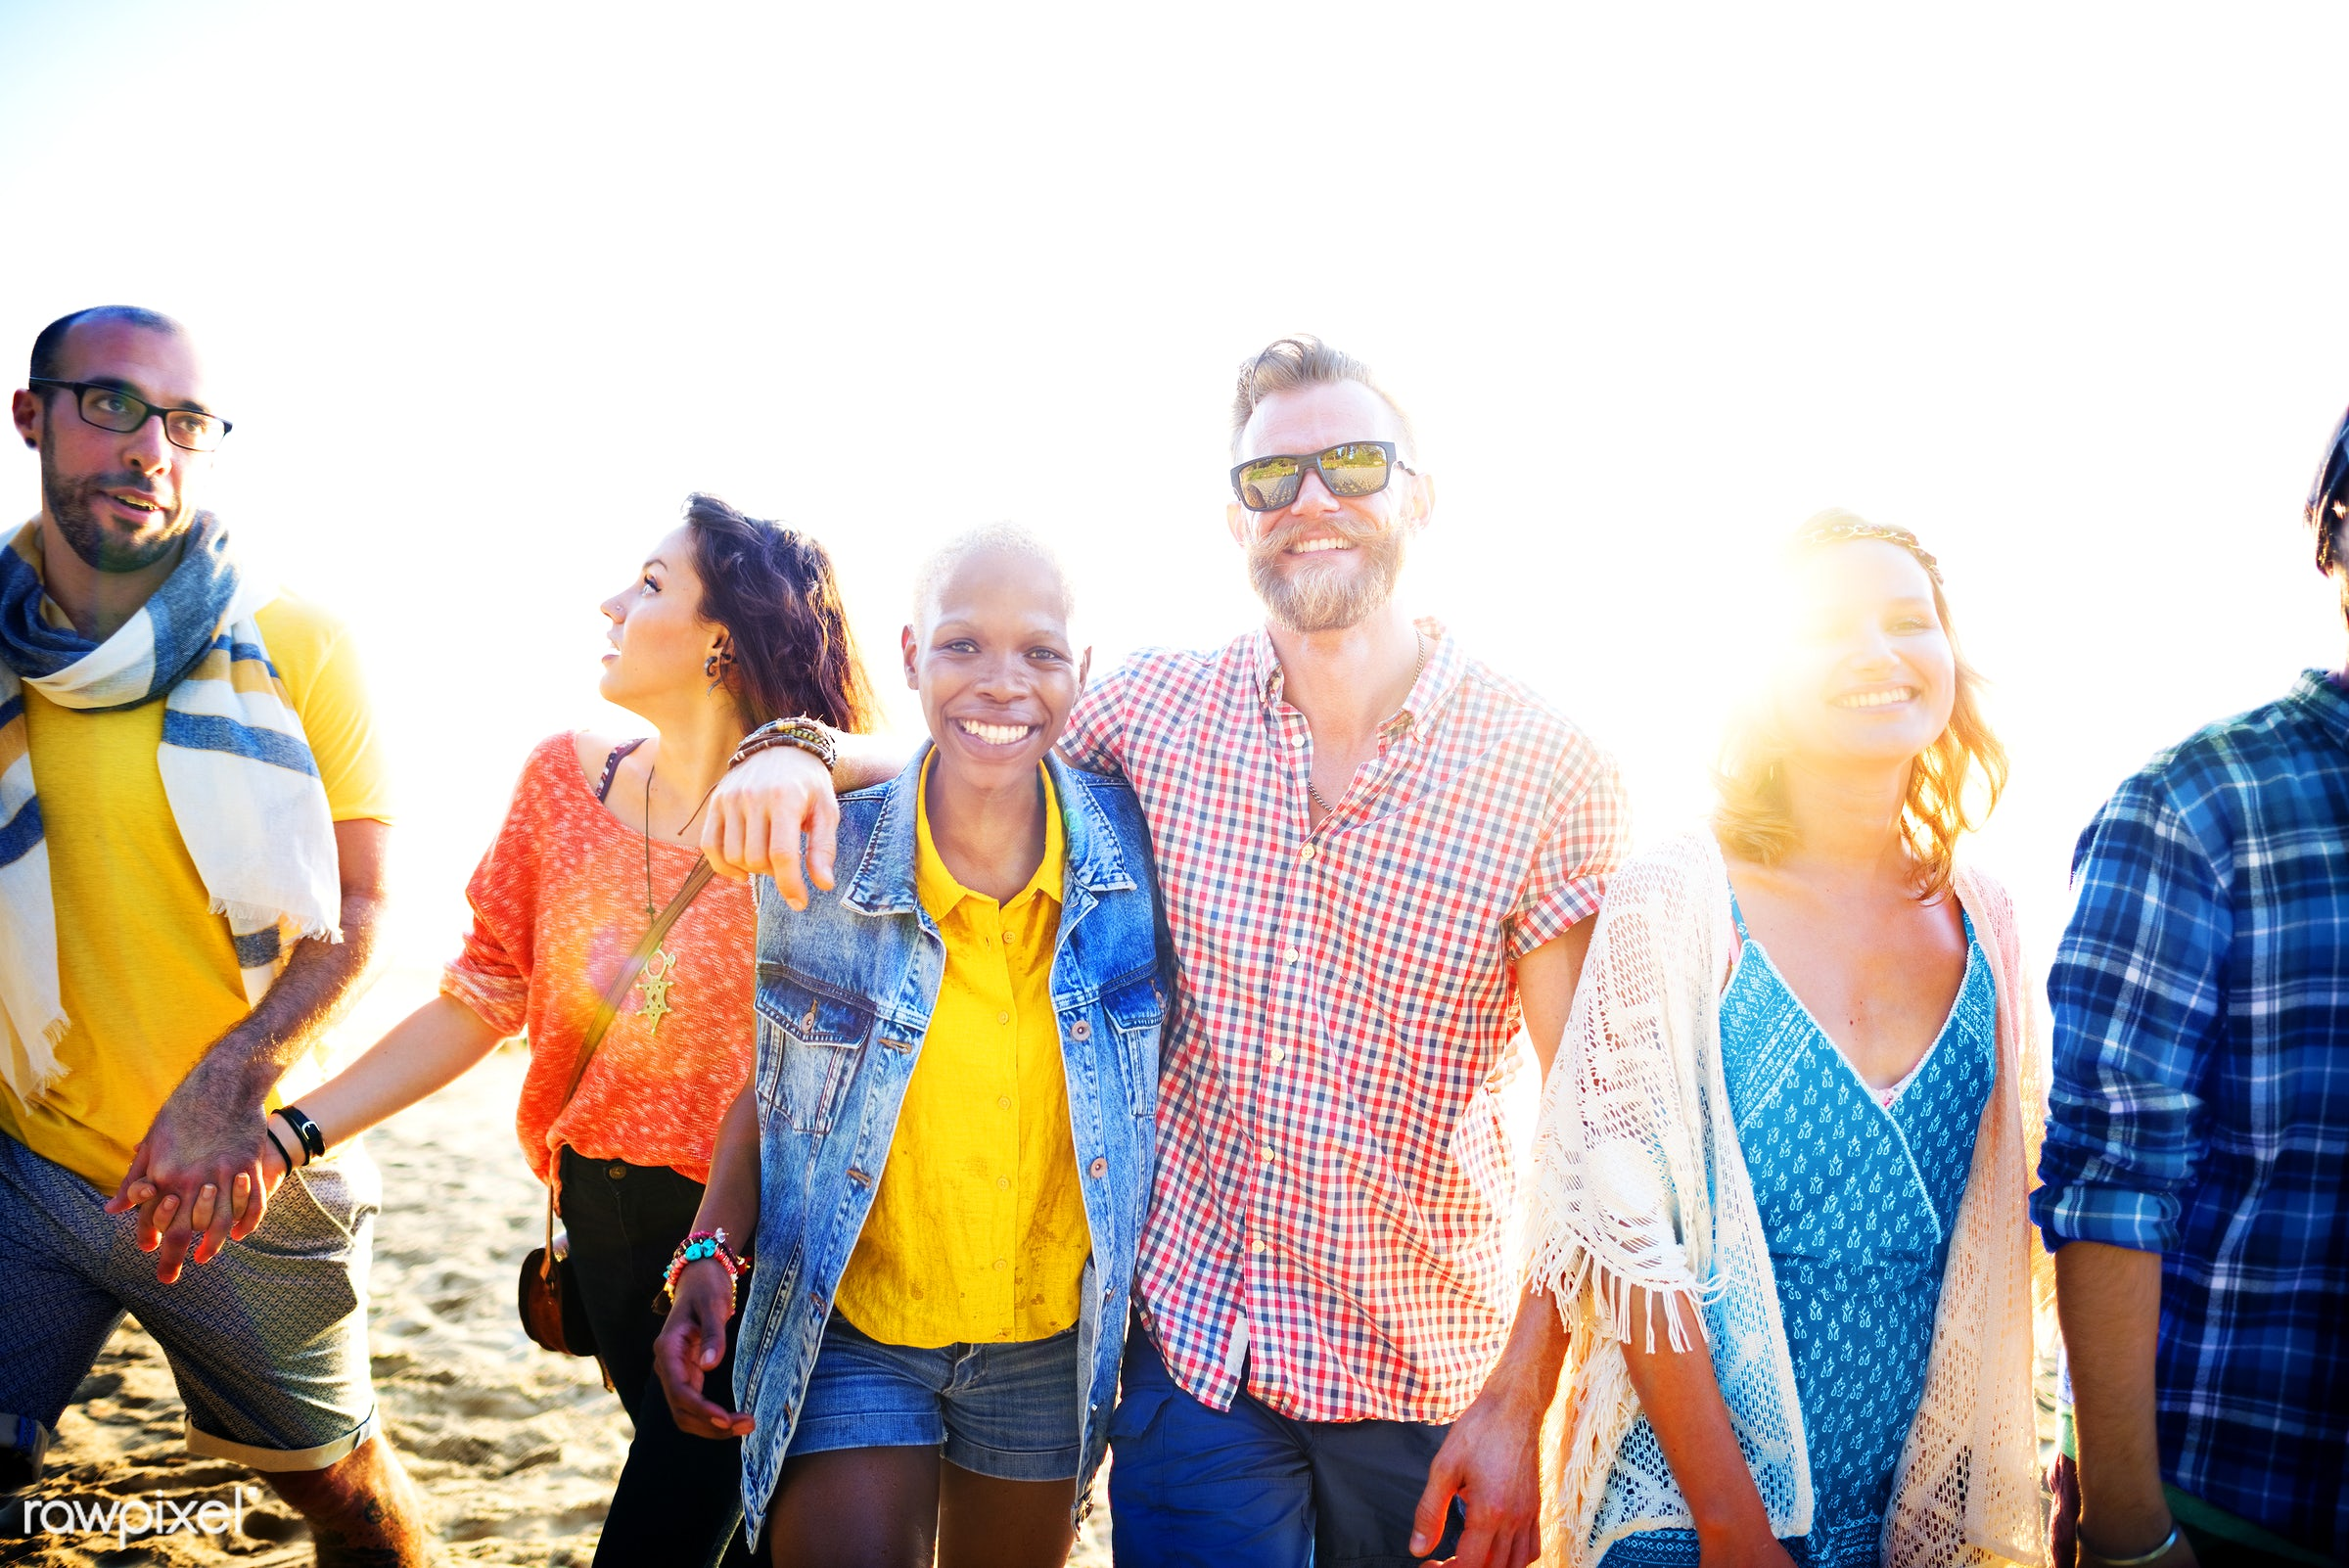 african, african descent, arm around, beach, beautiful, bonding, bright, casual, cheerful, chilling, colorful, day, diverse...